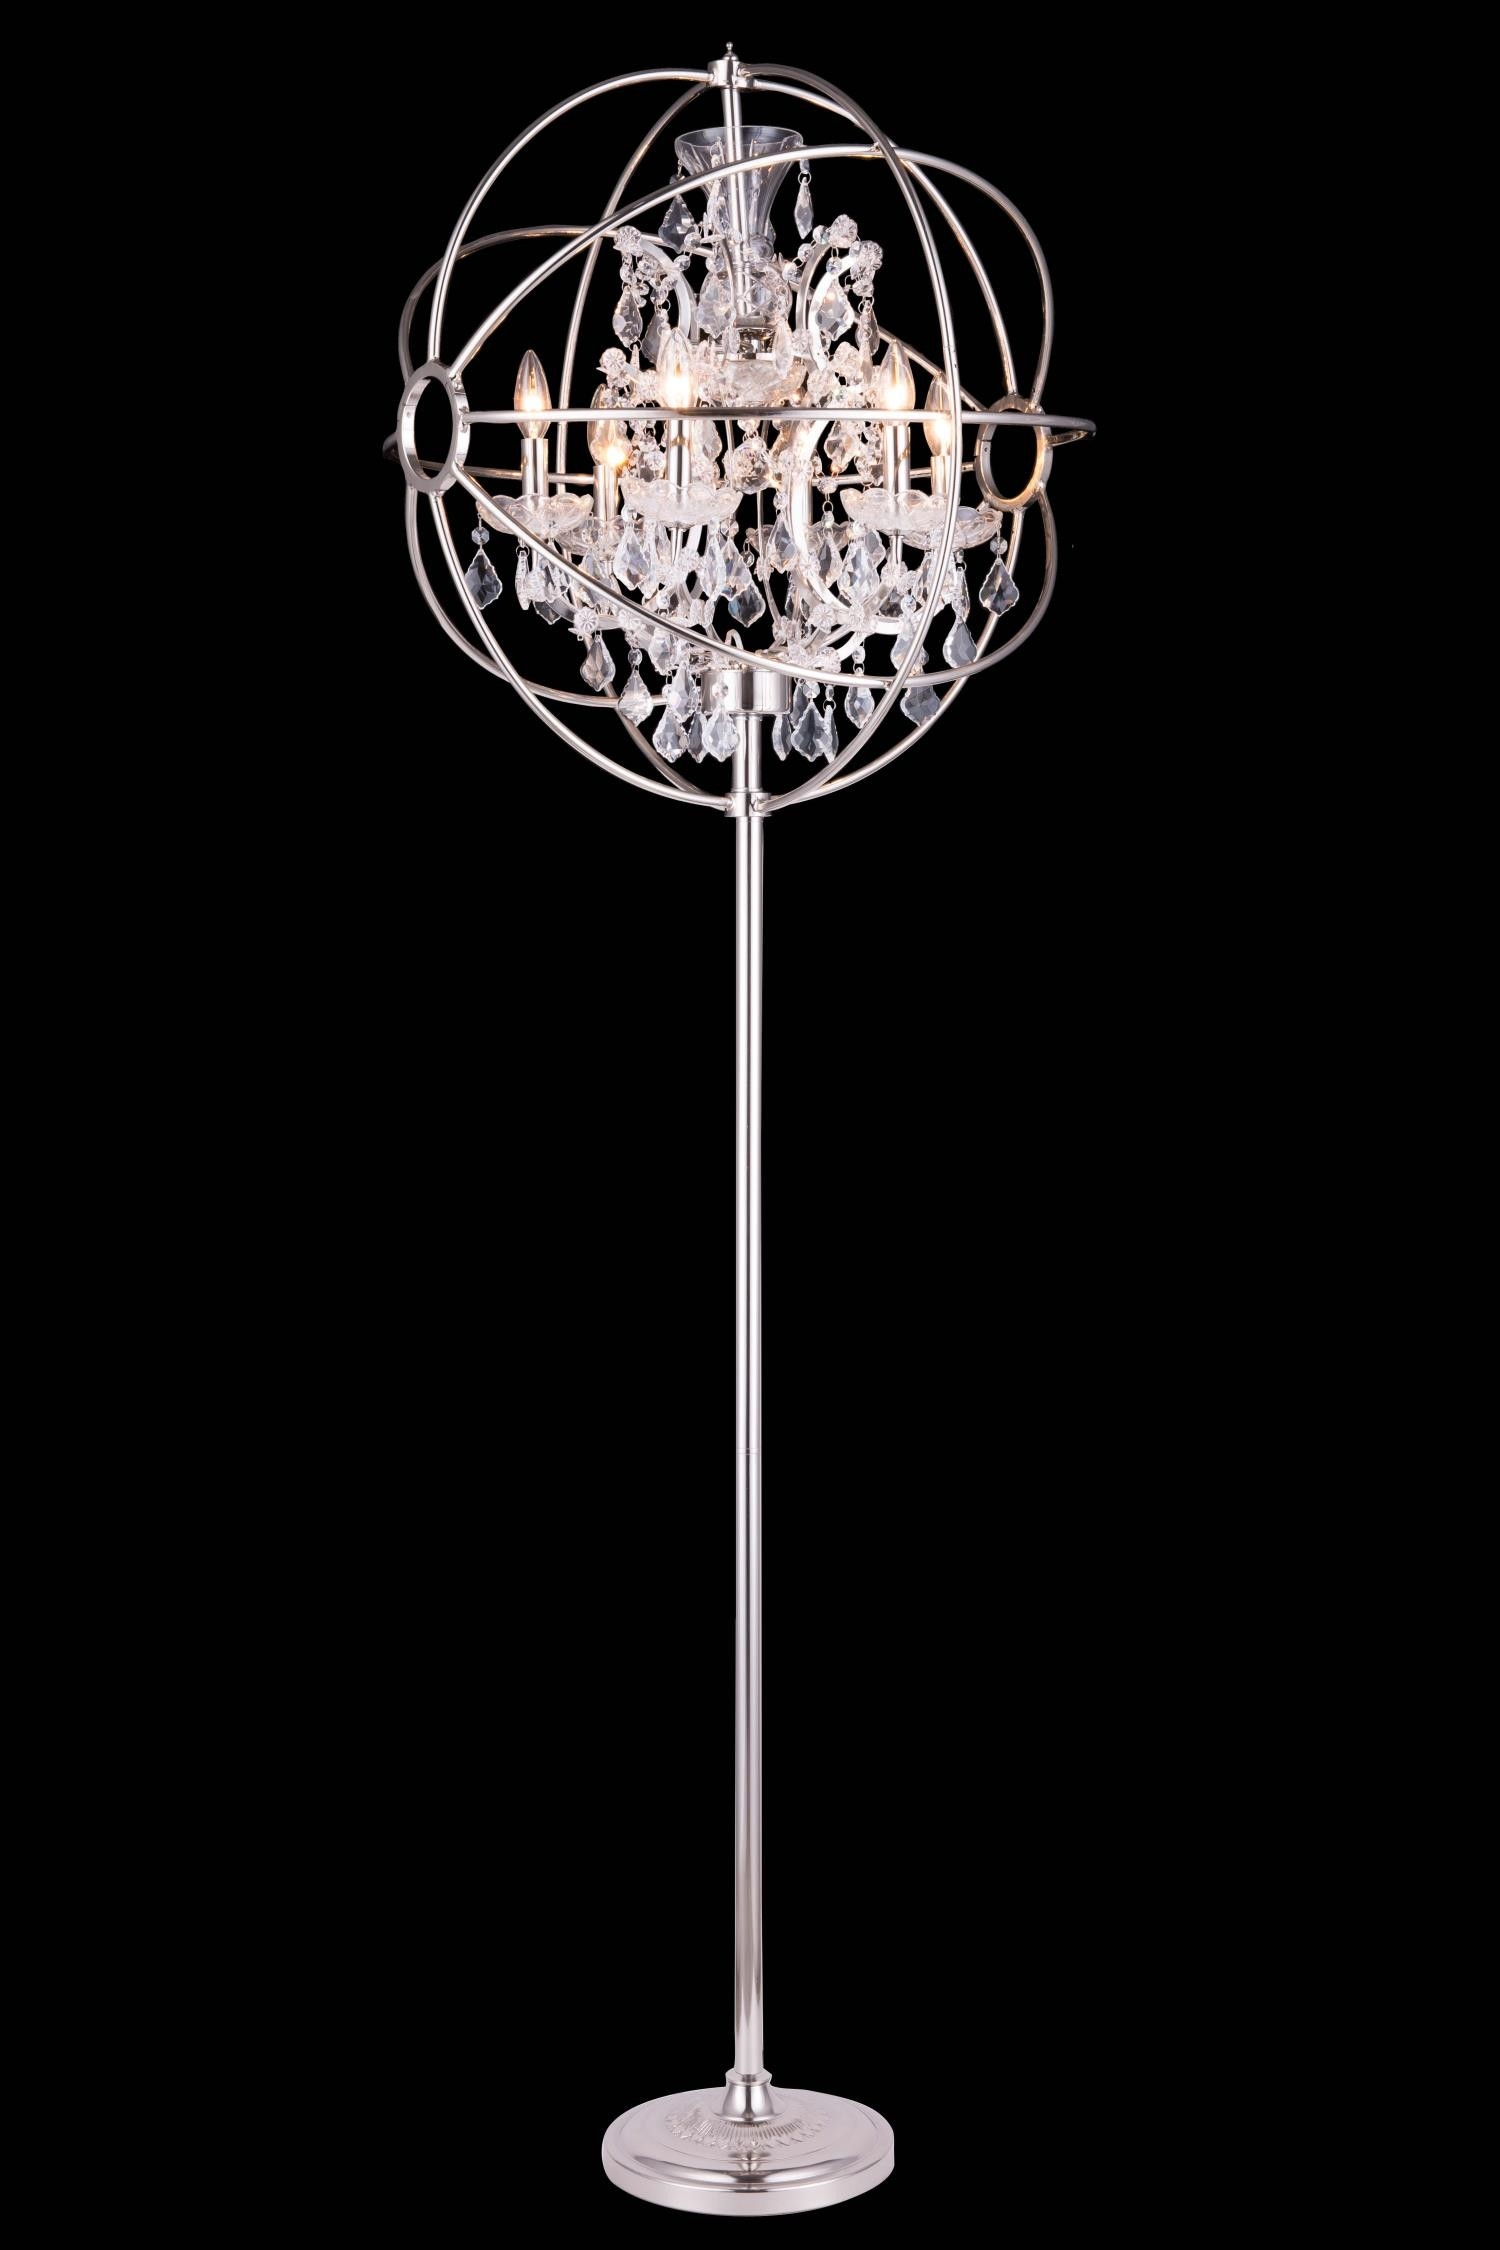 Lights Cool Floor Lamp Design With Luxury Crystal Floor Lamp Throughout Chandelier Standing Lamps (View 11 of 25)